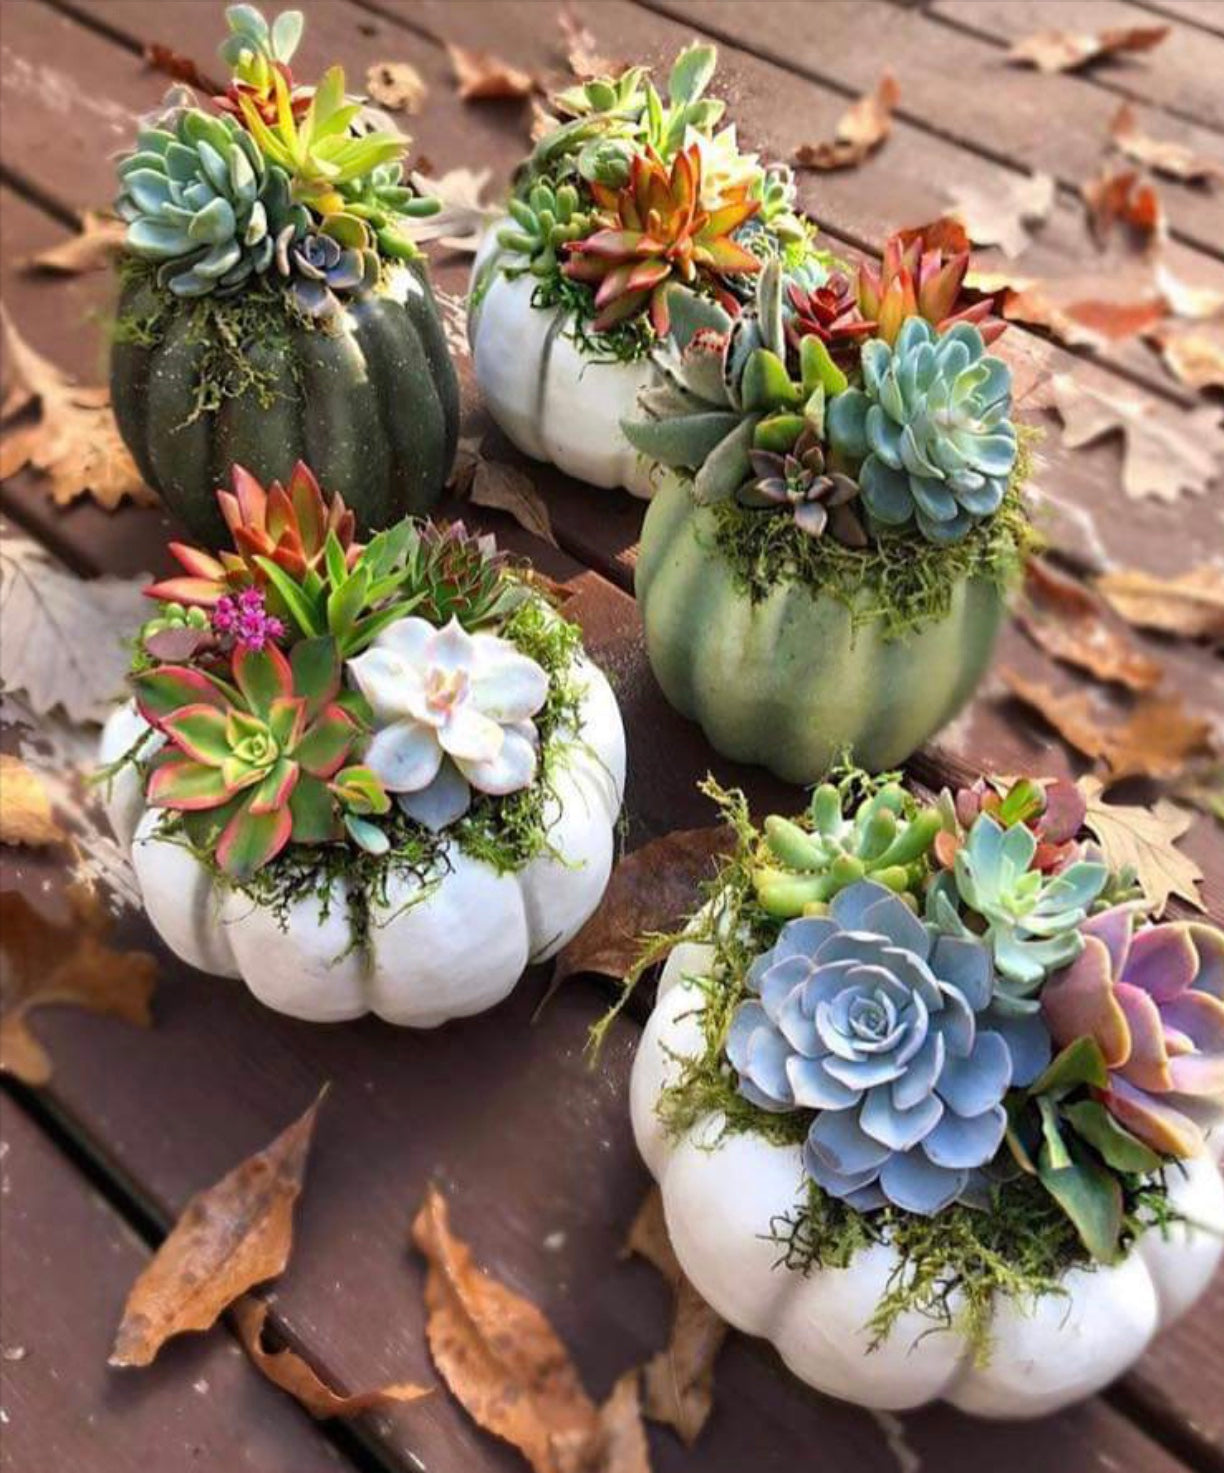 Lavender & Succulent Pumpkin Workshop - Oct 19